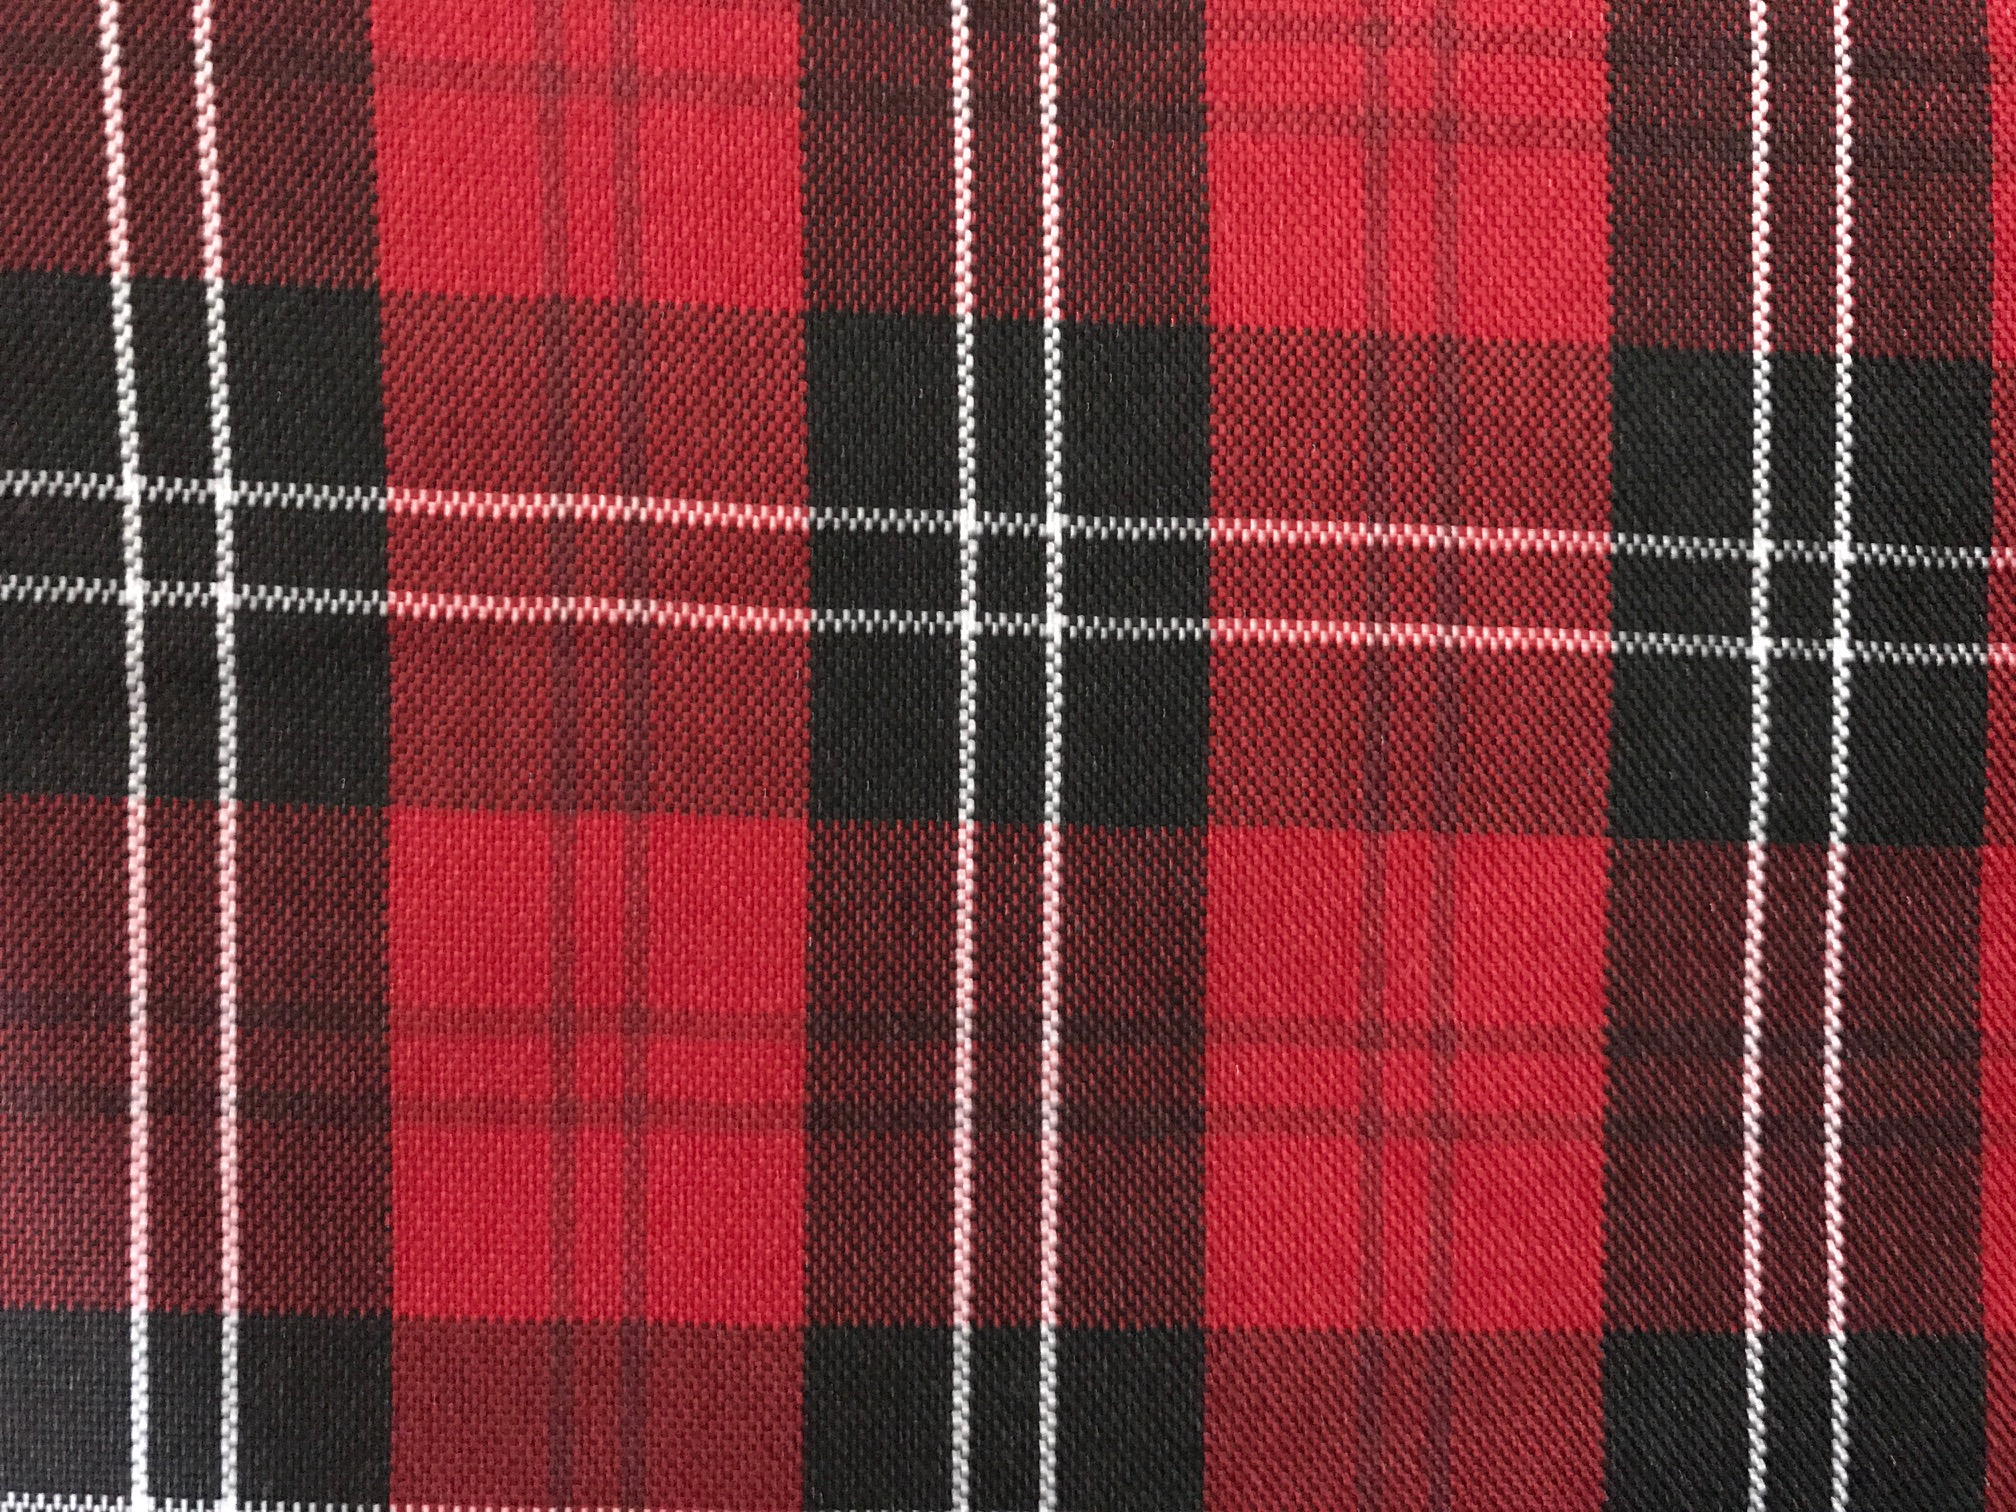 Red, Black and White Plaid